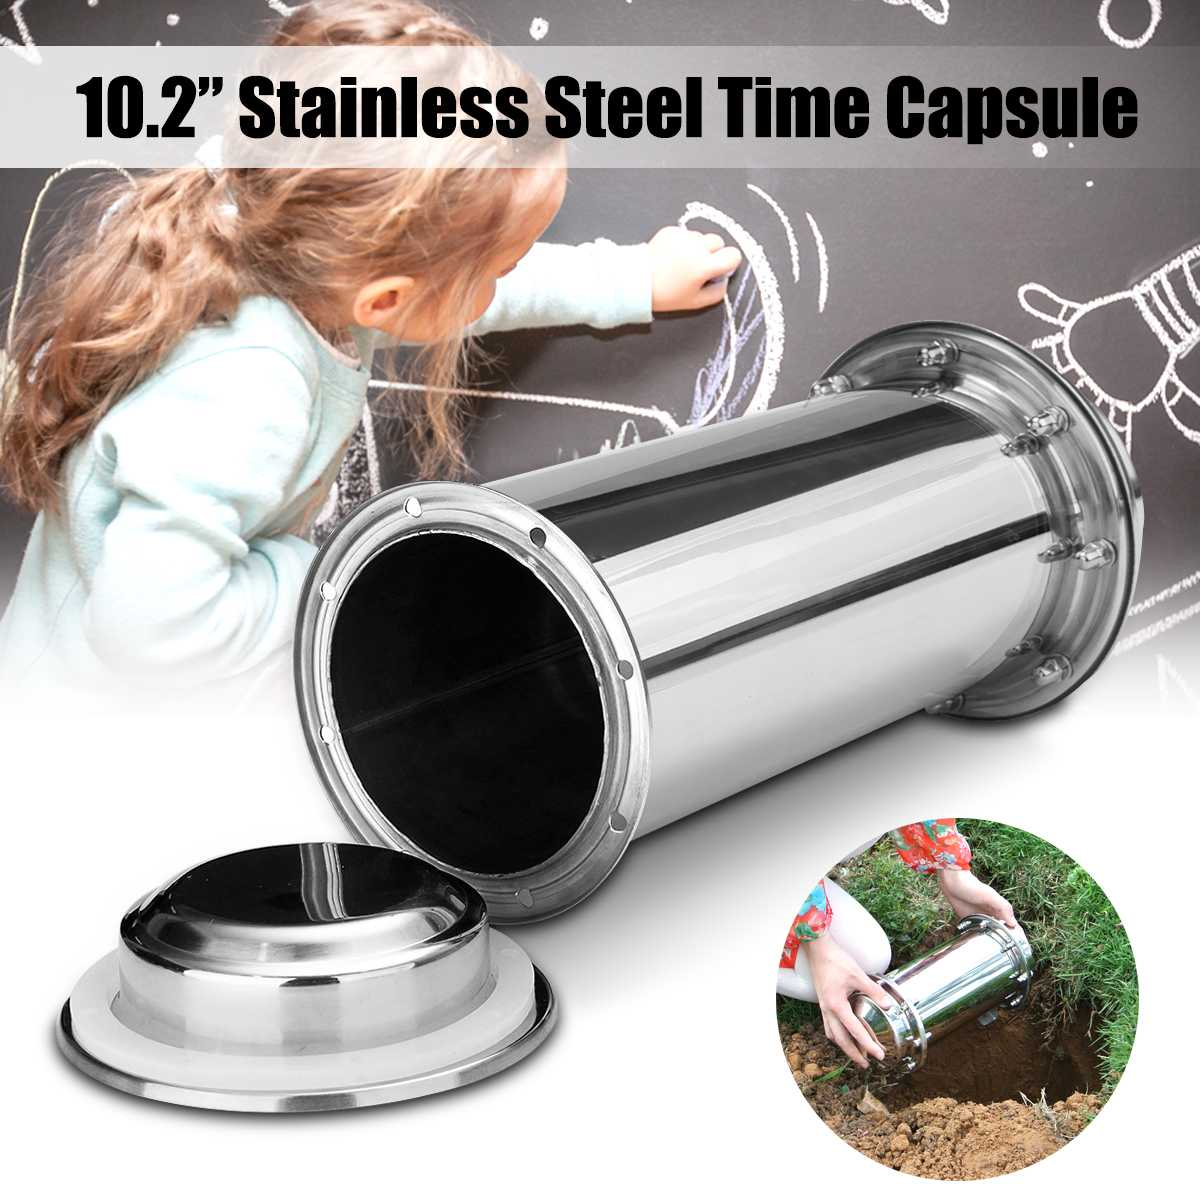 Stainless Steel Time Capsule Waterproof Lock Container Storage Future Gift Length 26cm Diameter 10cm